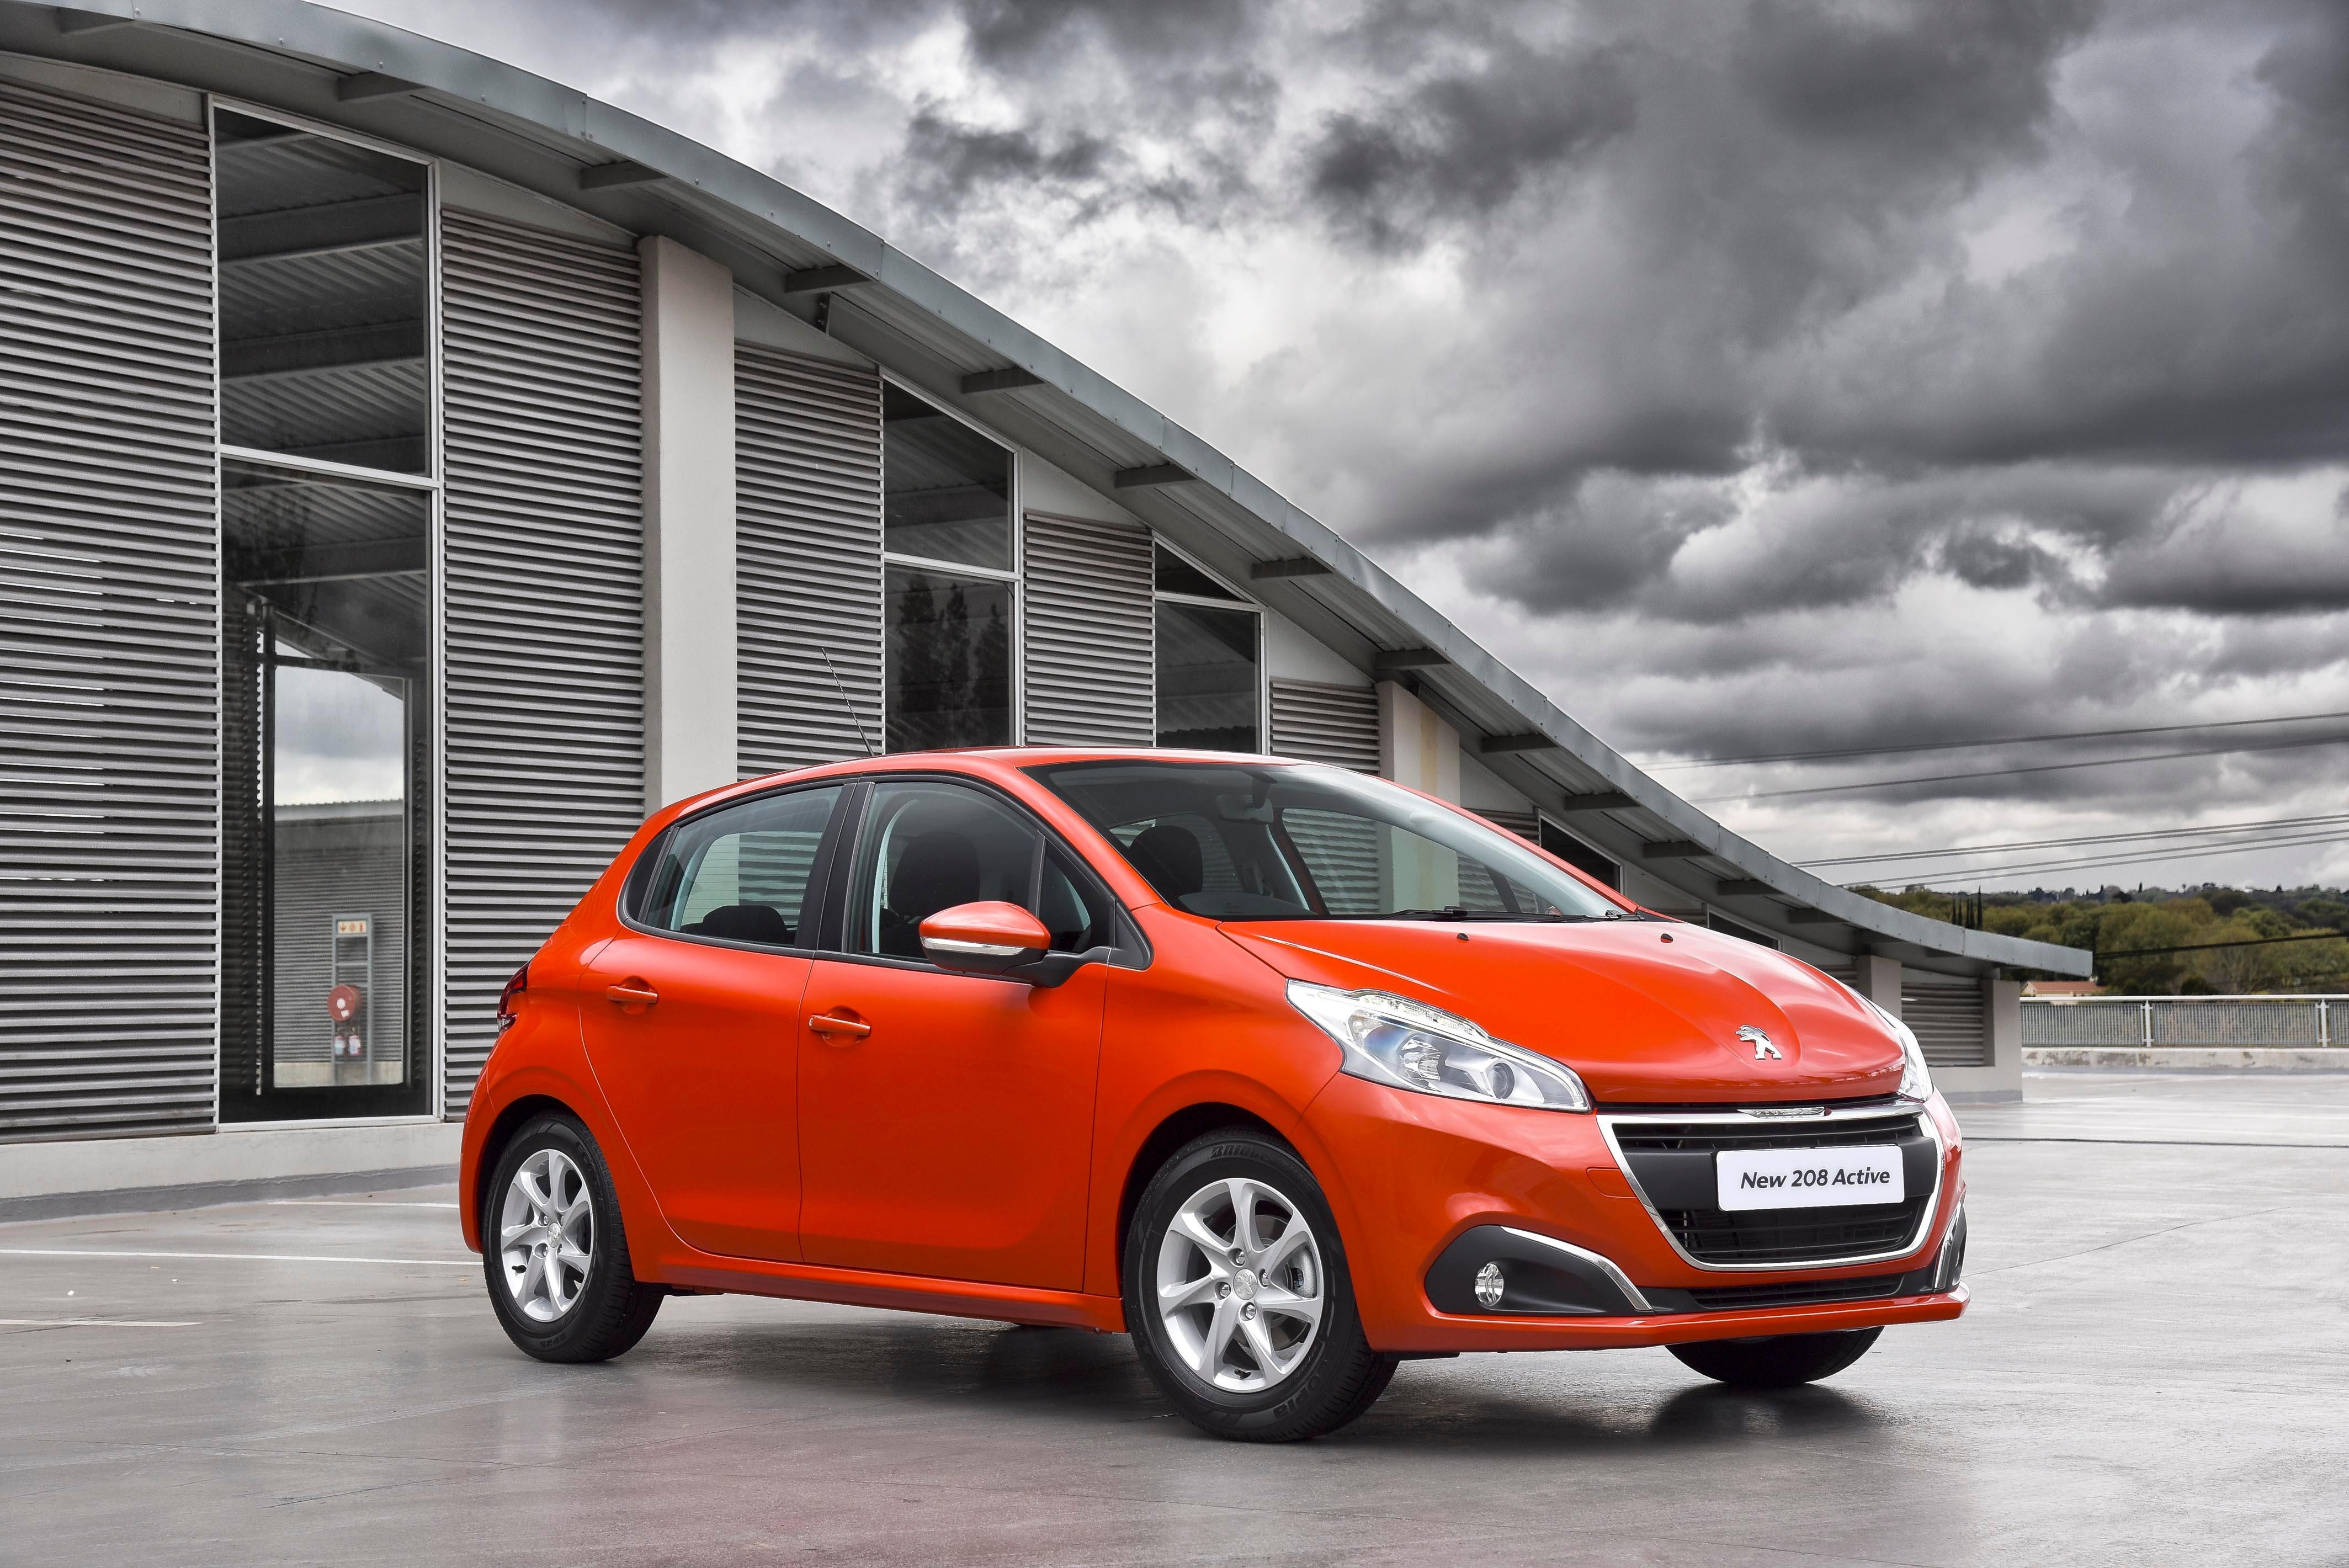 new opel corsa coming in 2019 with psa tech carscoops. Black Bedroom Furniture Sets. Home Design Ideas